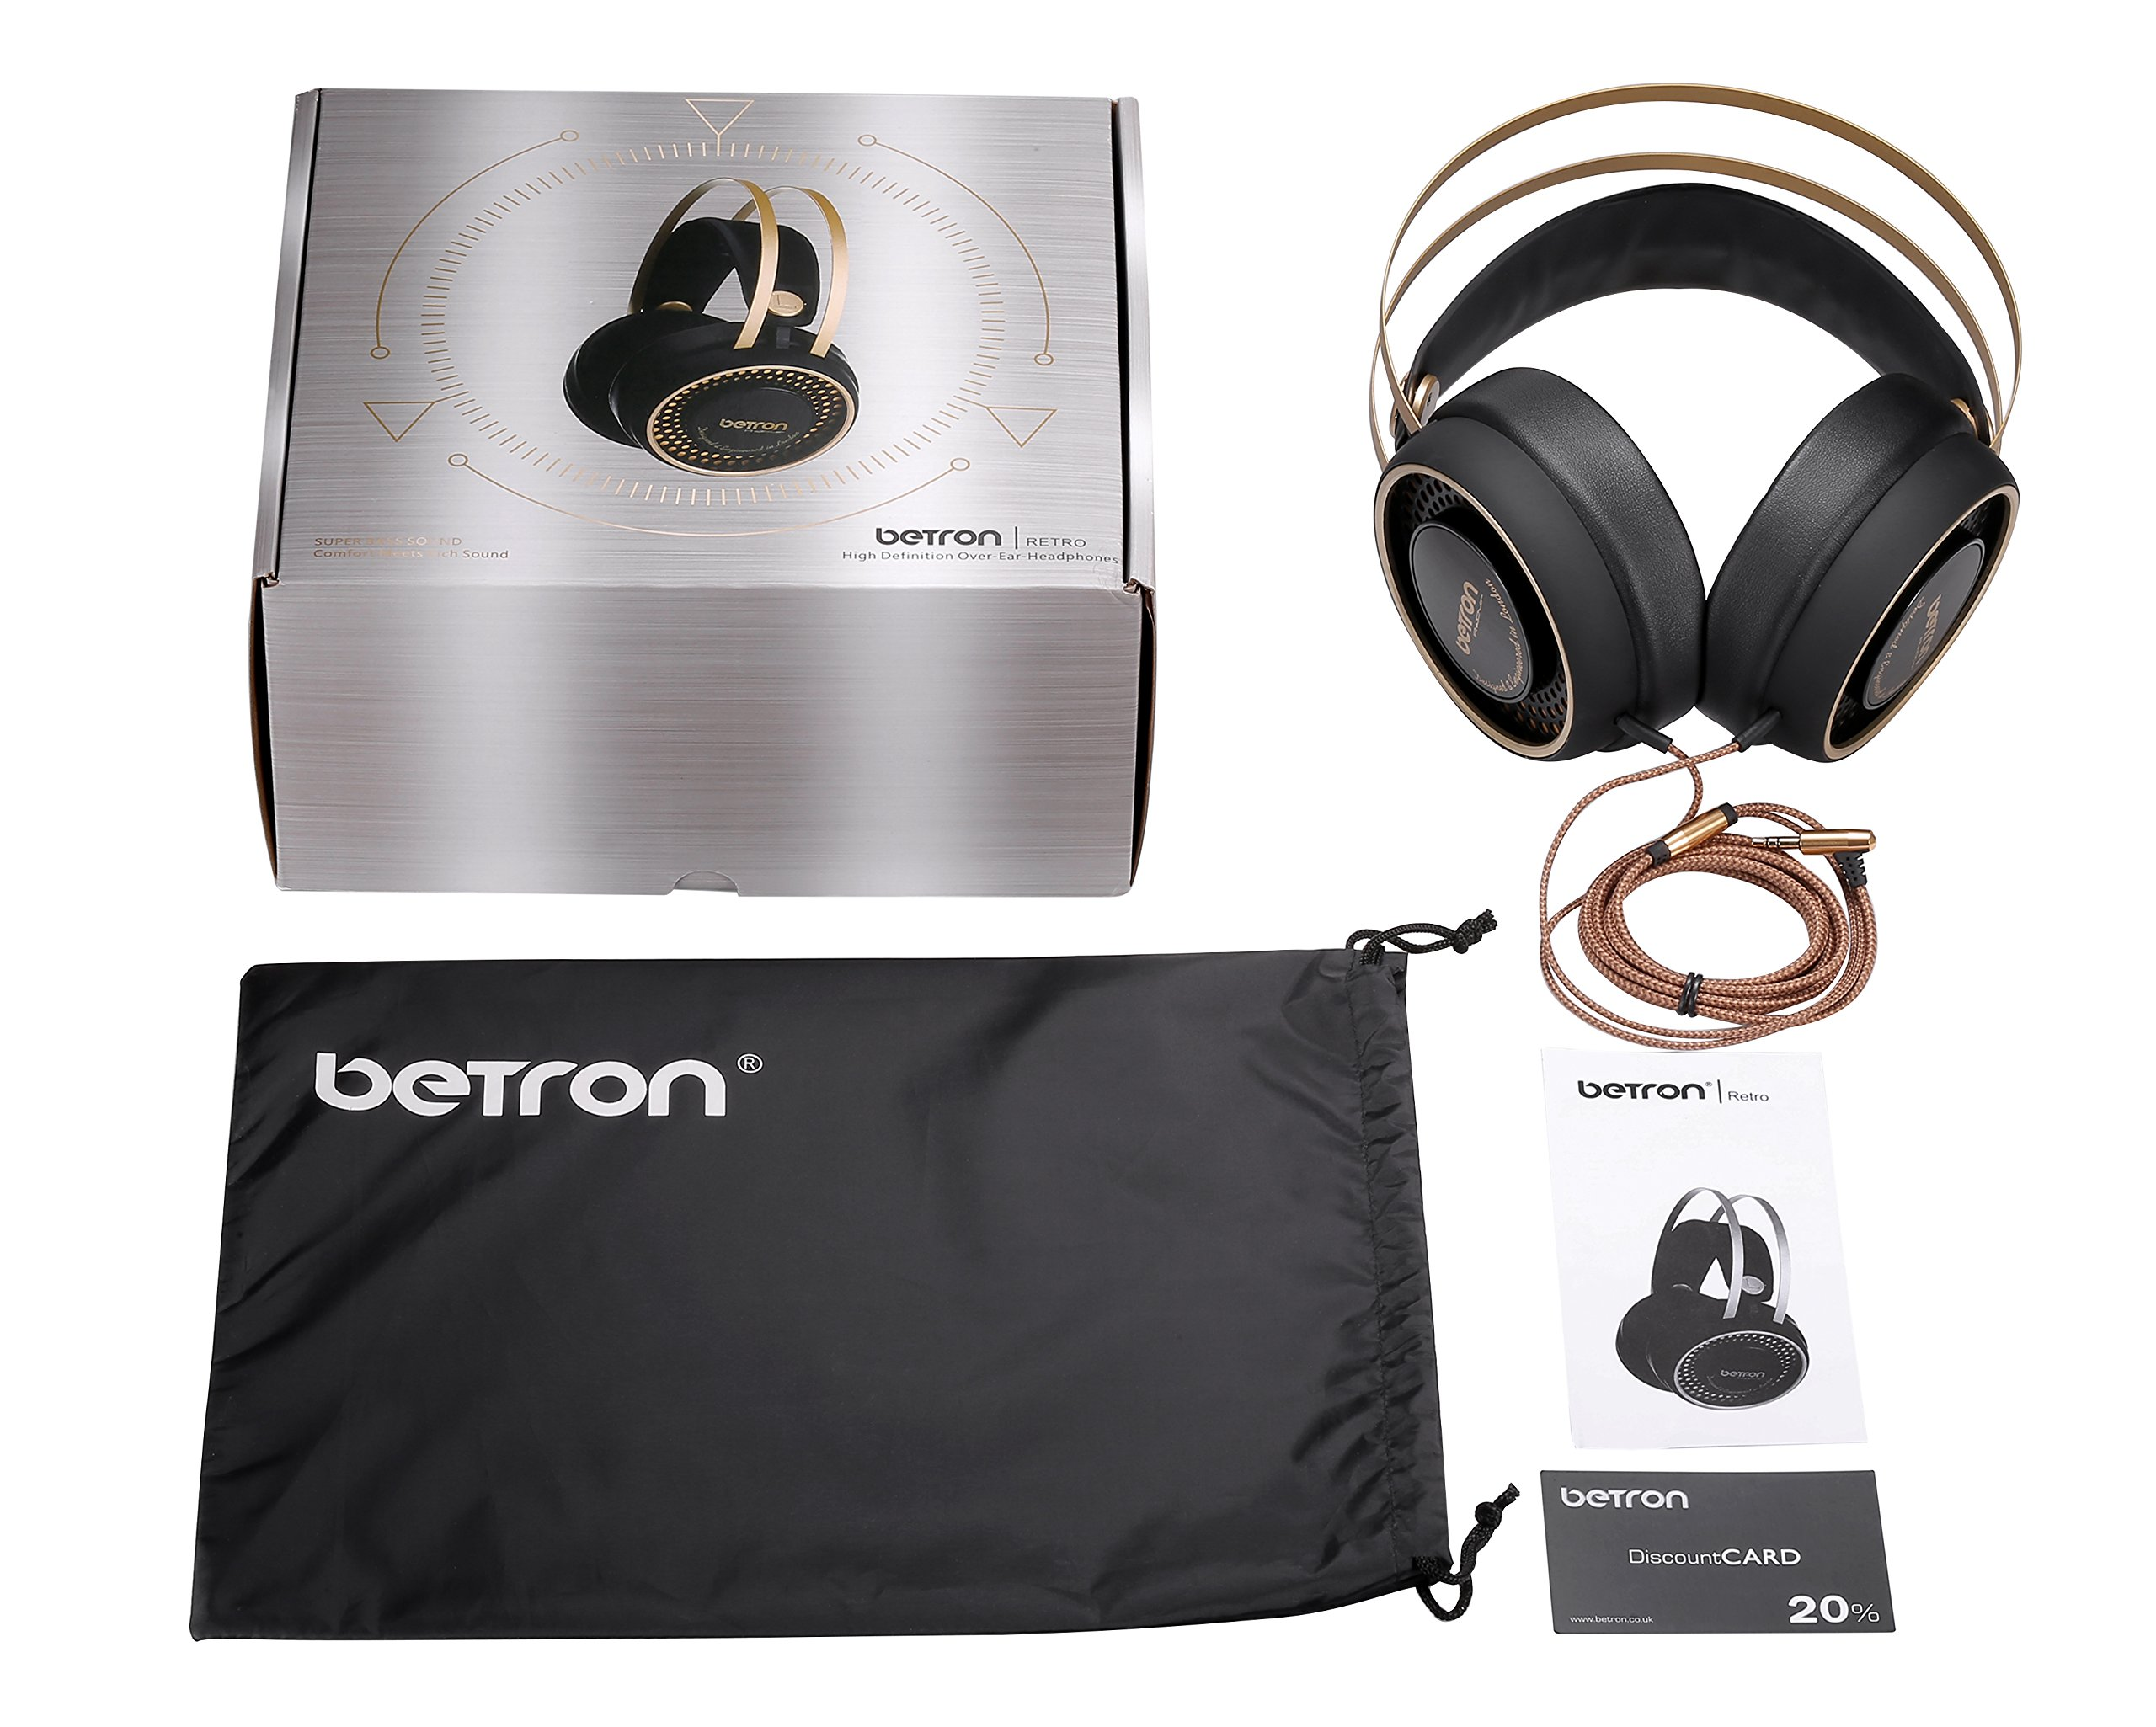 Betron Retro Over Ear Headphones Bass Driven Sound for Iphone, Ipod, Ipad, Tablets, Laptops, Mp3 Players